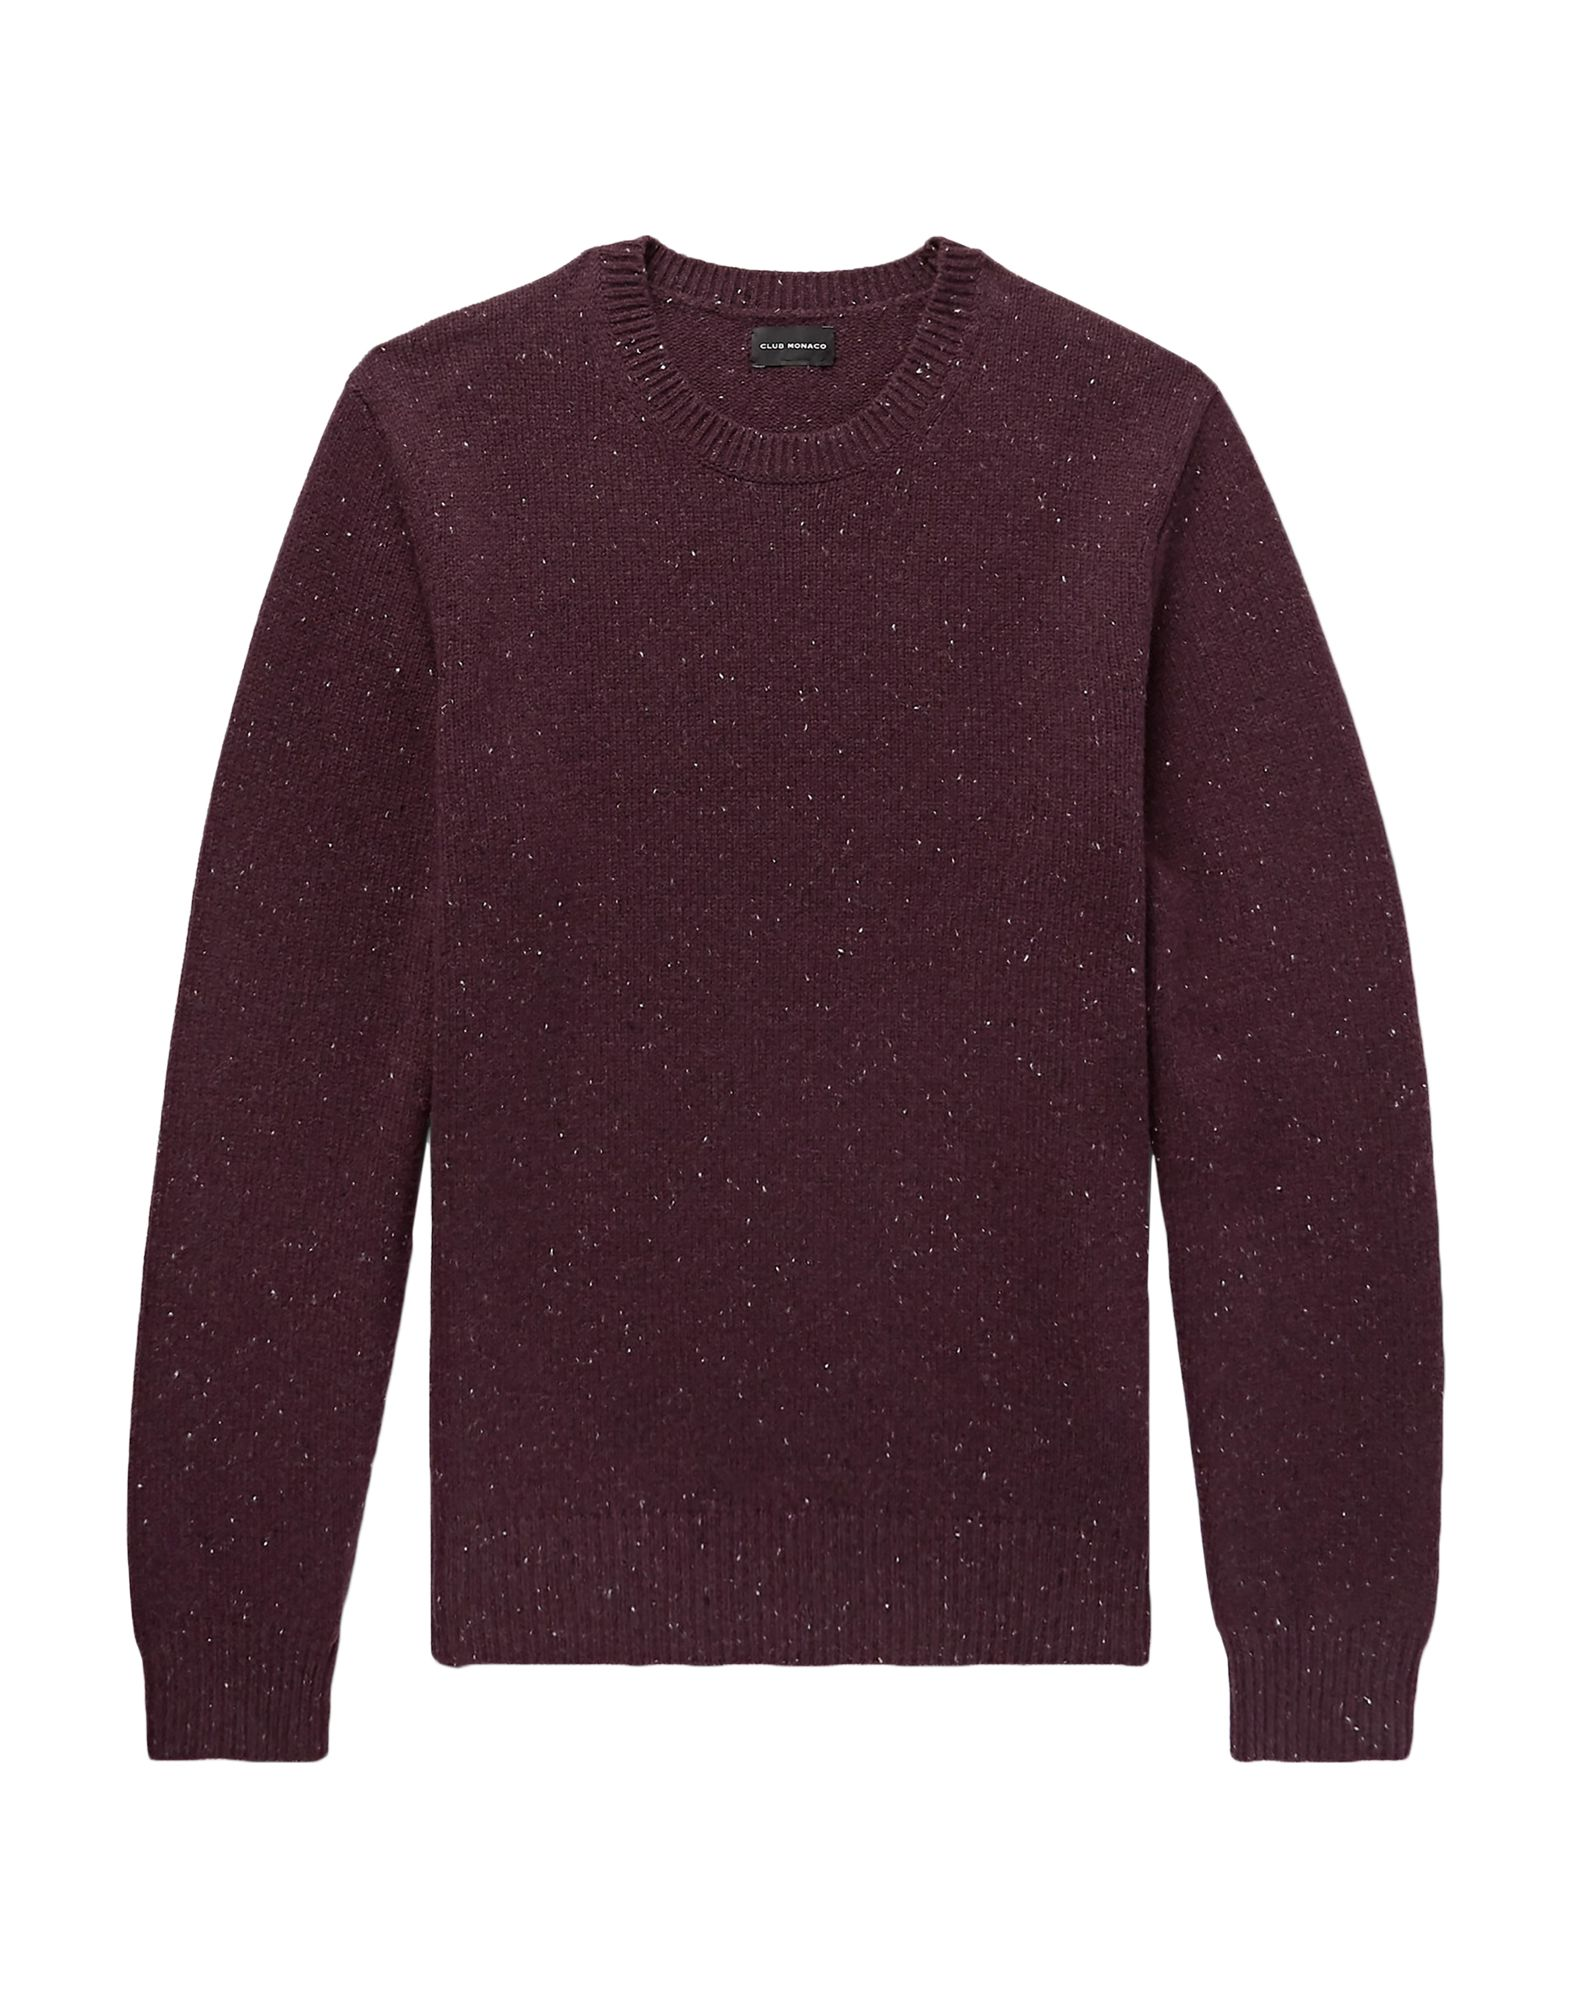 CLUB MONACO Sweaters. knitted, no appliqués, solid color, round collar, lightweight sweater, long sleeves, no pockets. 100% Merino Wool